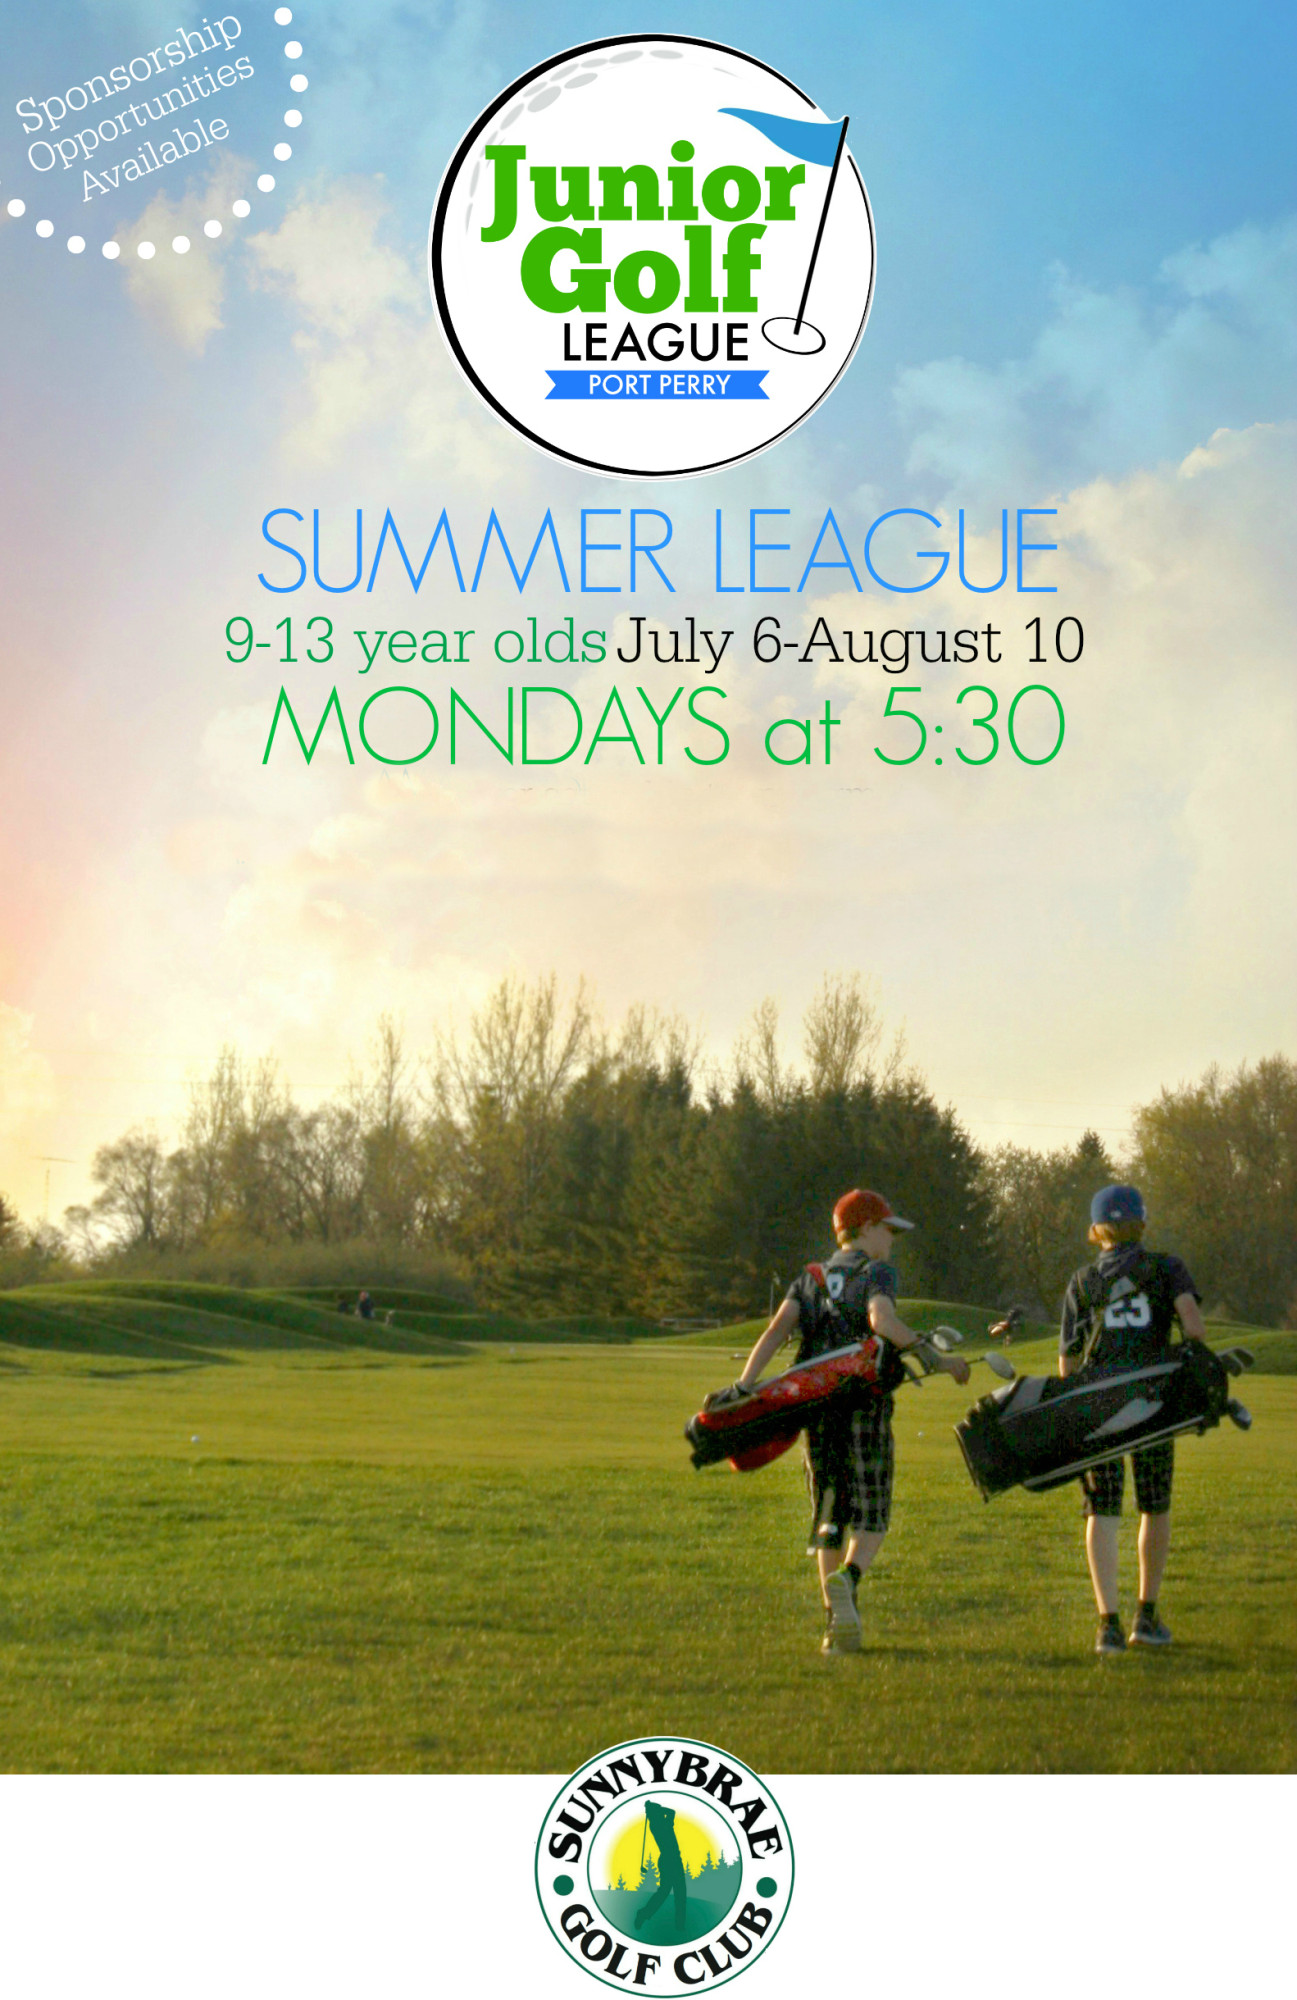 https://www.sunnybraegolfclub.com/the-port-perry-junior-golf-league/